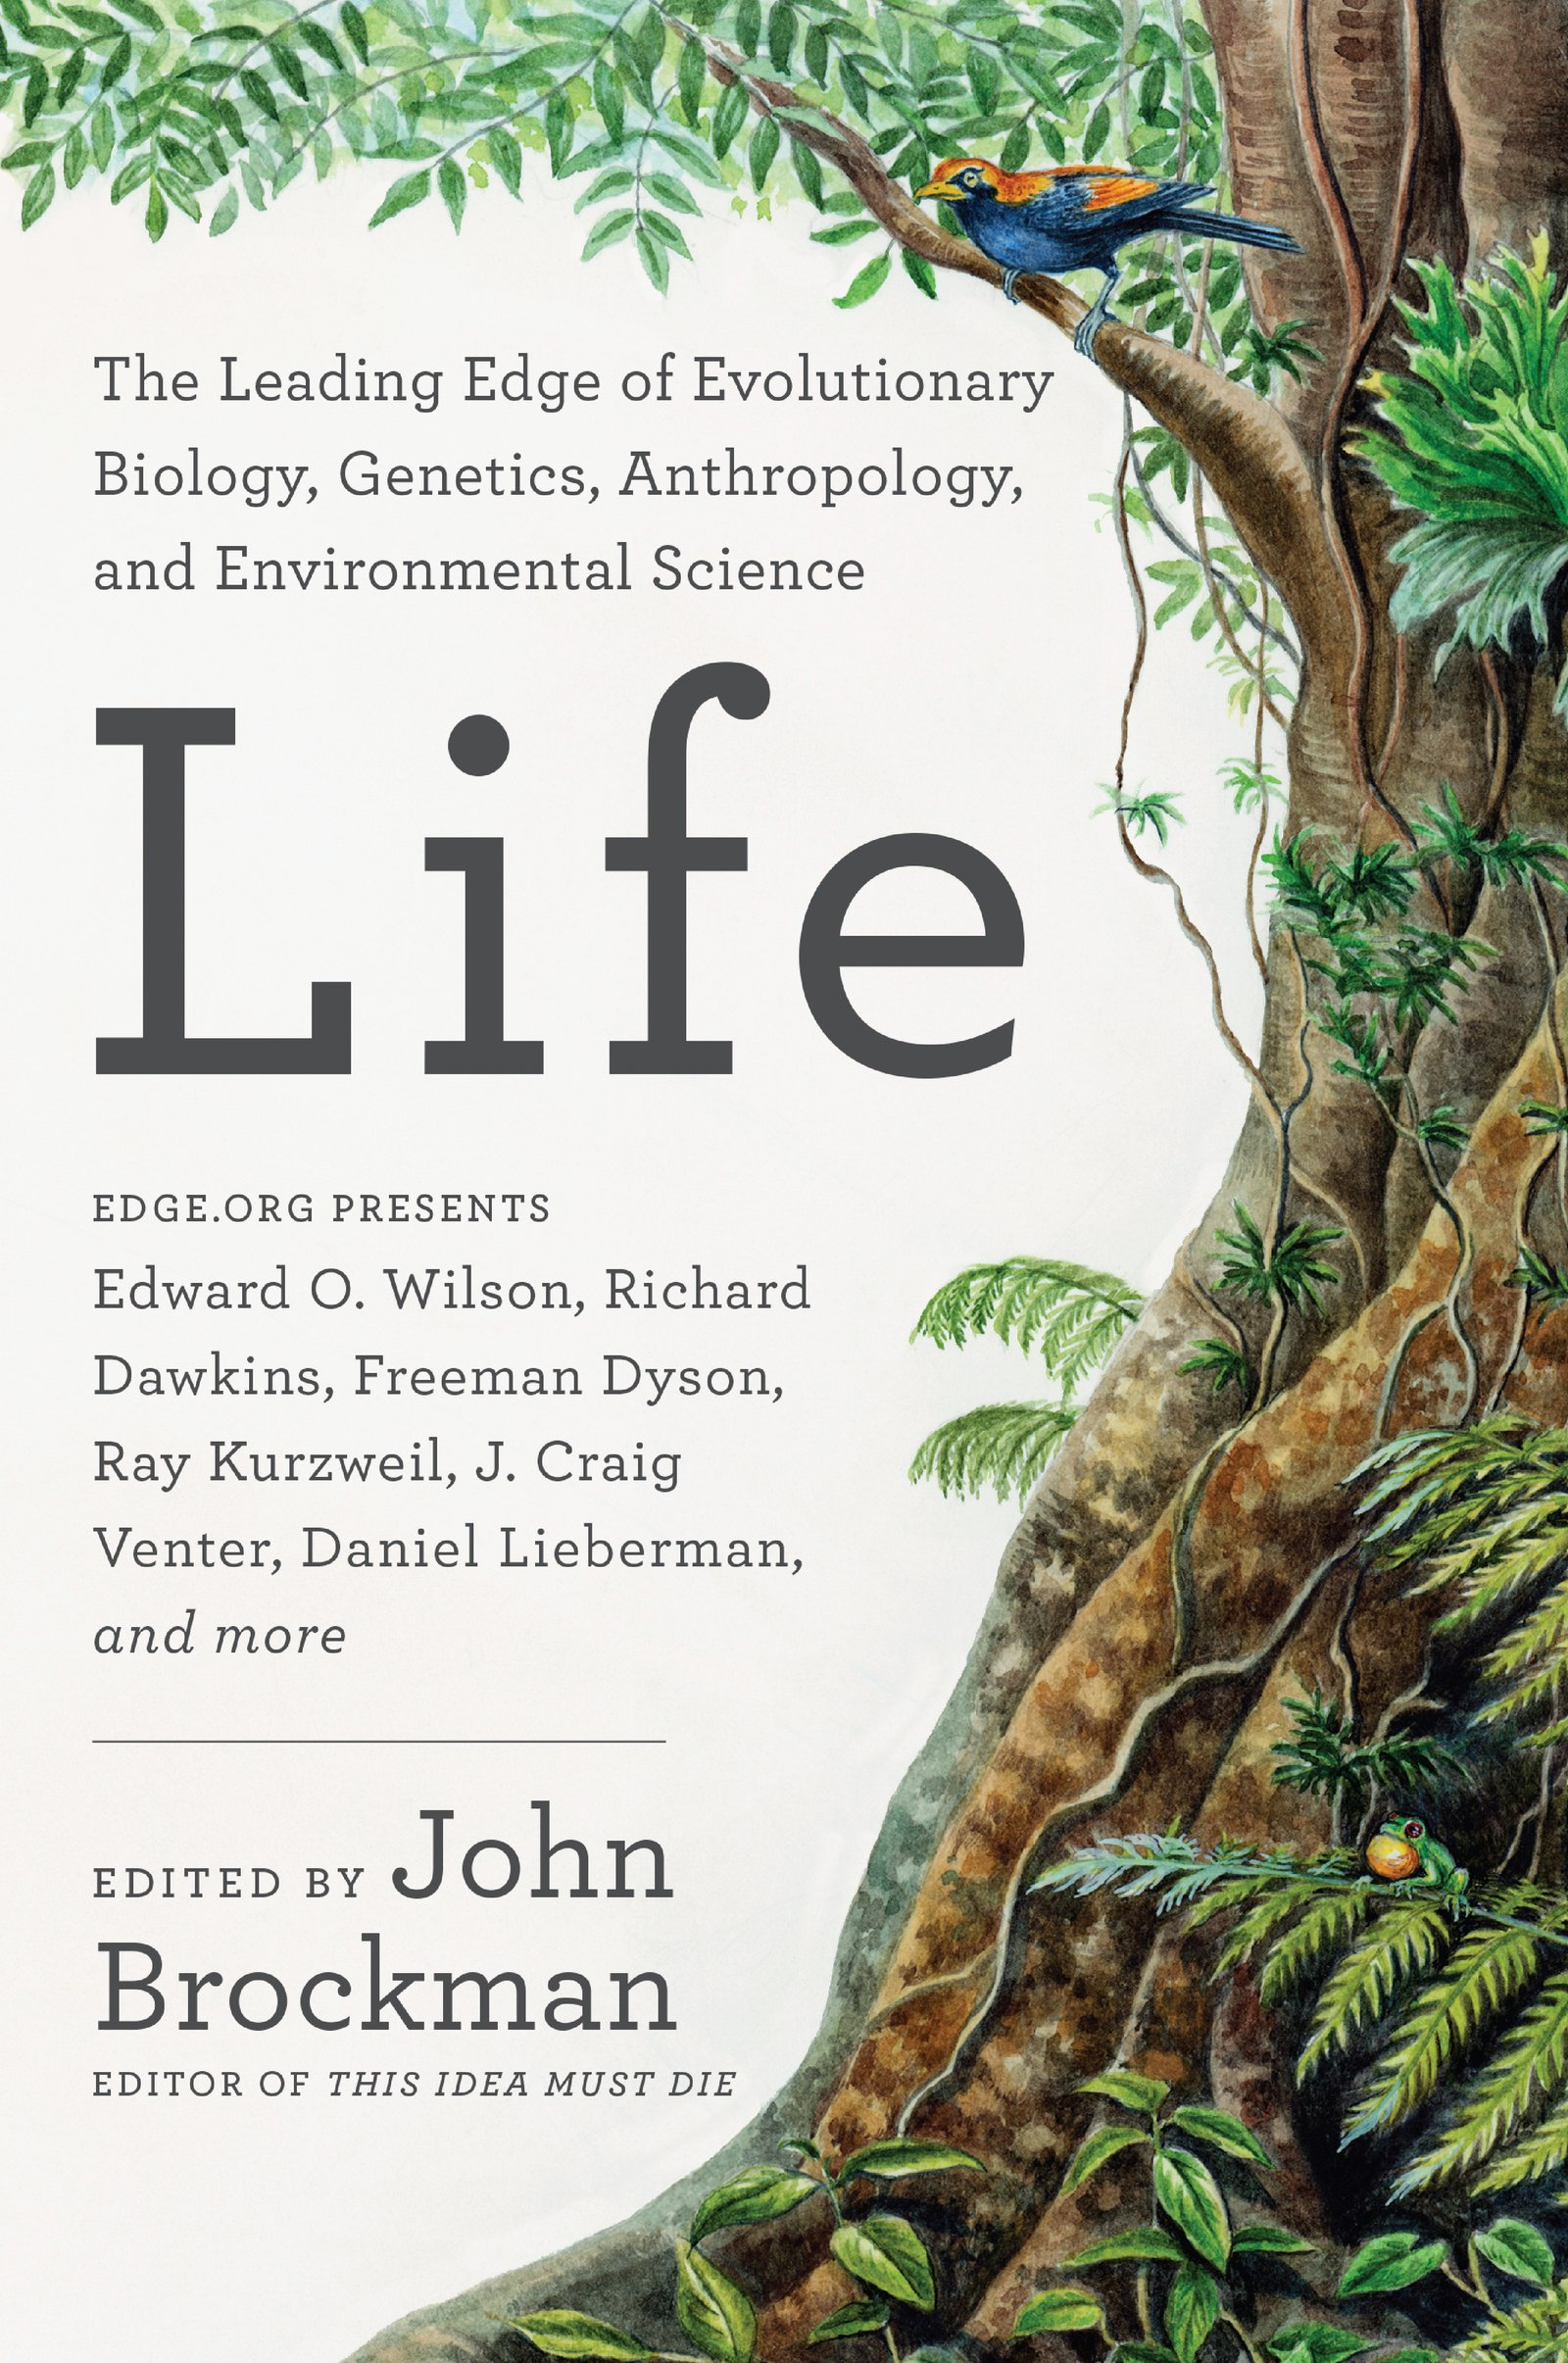 Download Life: The Leading Edge Of Evolutionary Biology, Genetics, Anthropology, And Environmental Science (Best Of Edge Series) (E... 